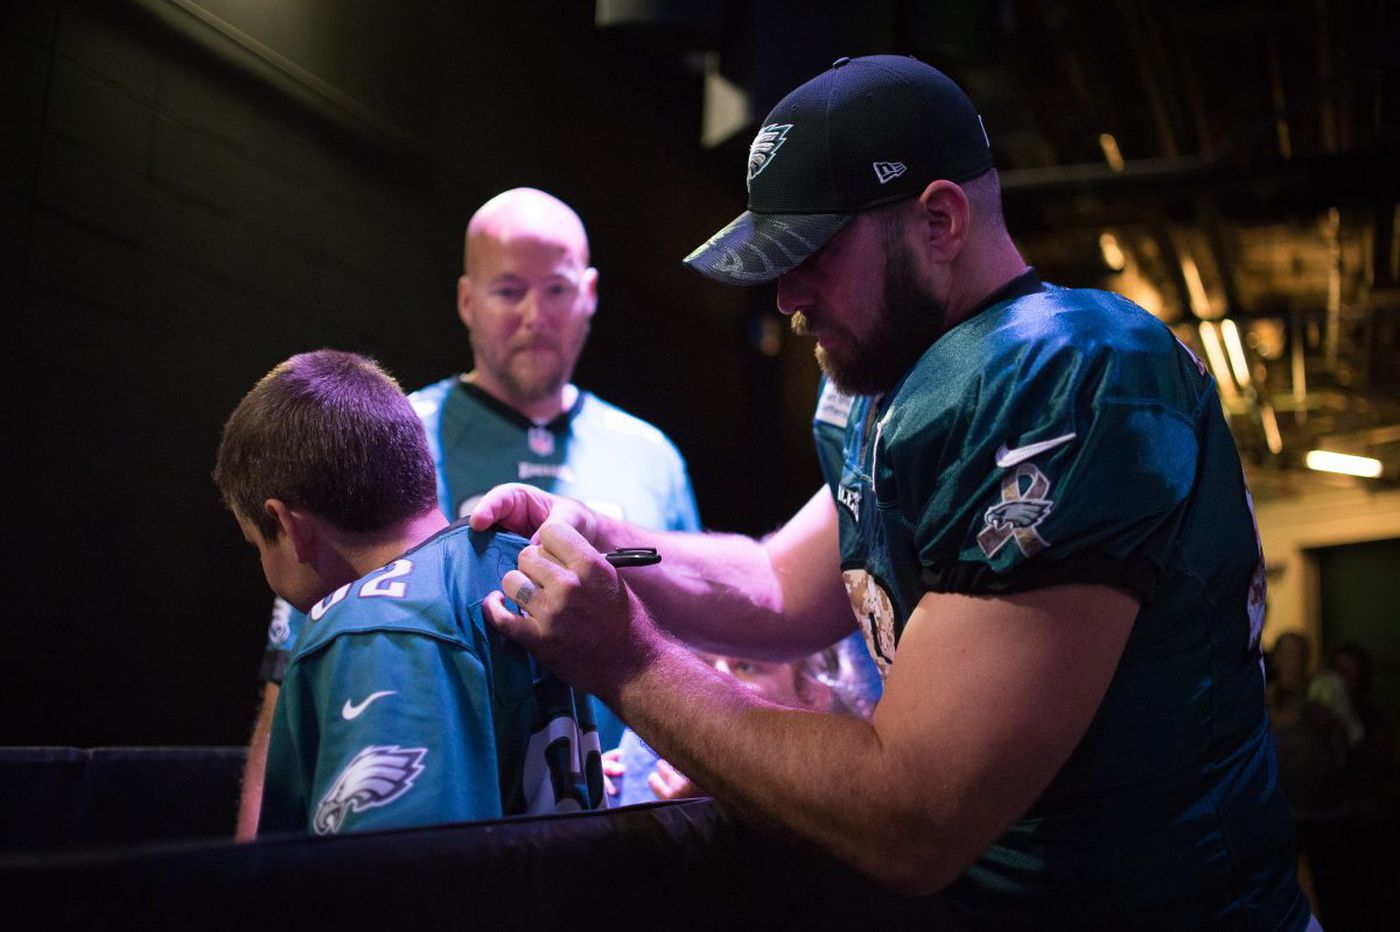 Eagles trade popular long snapper Jon Dorenbos to Saints for draft pick